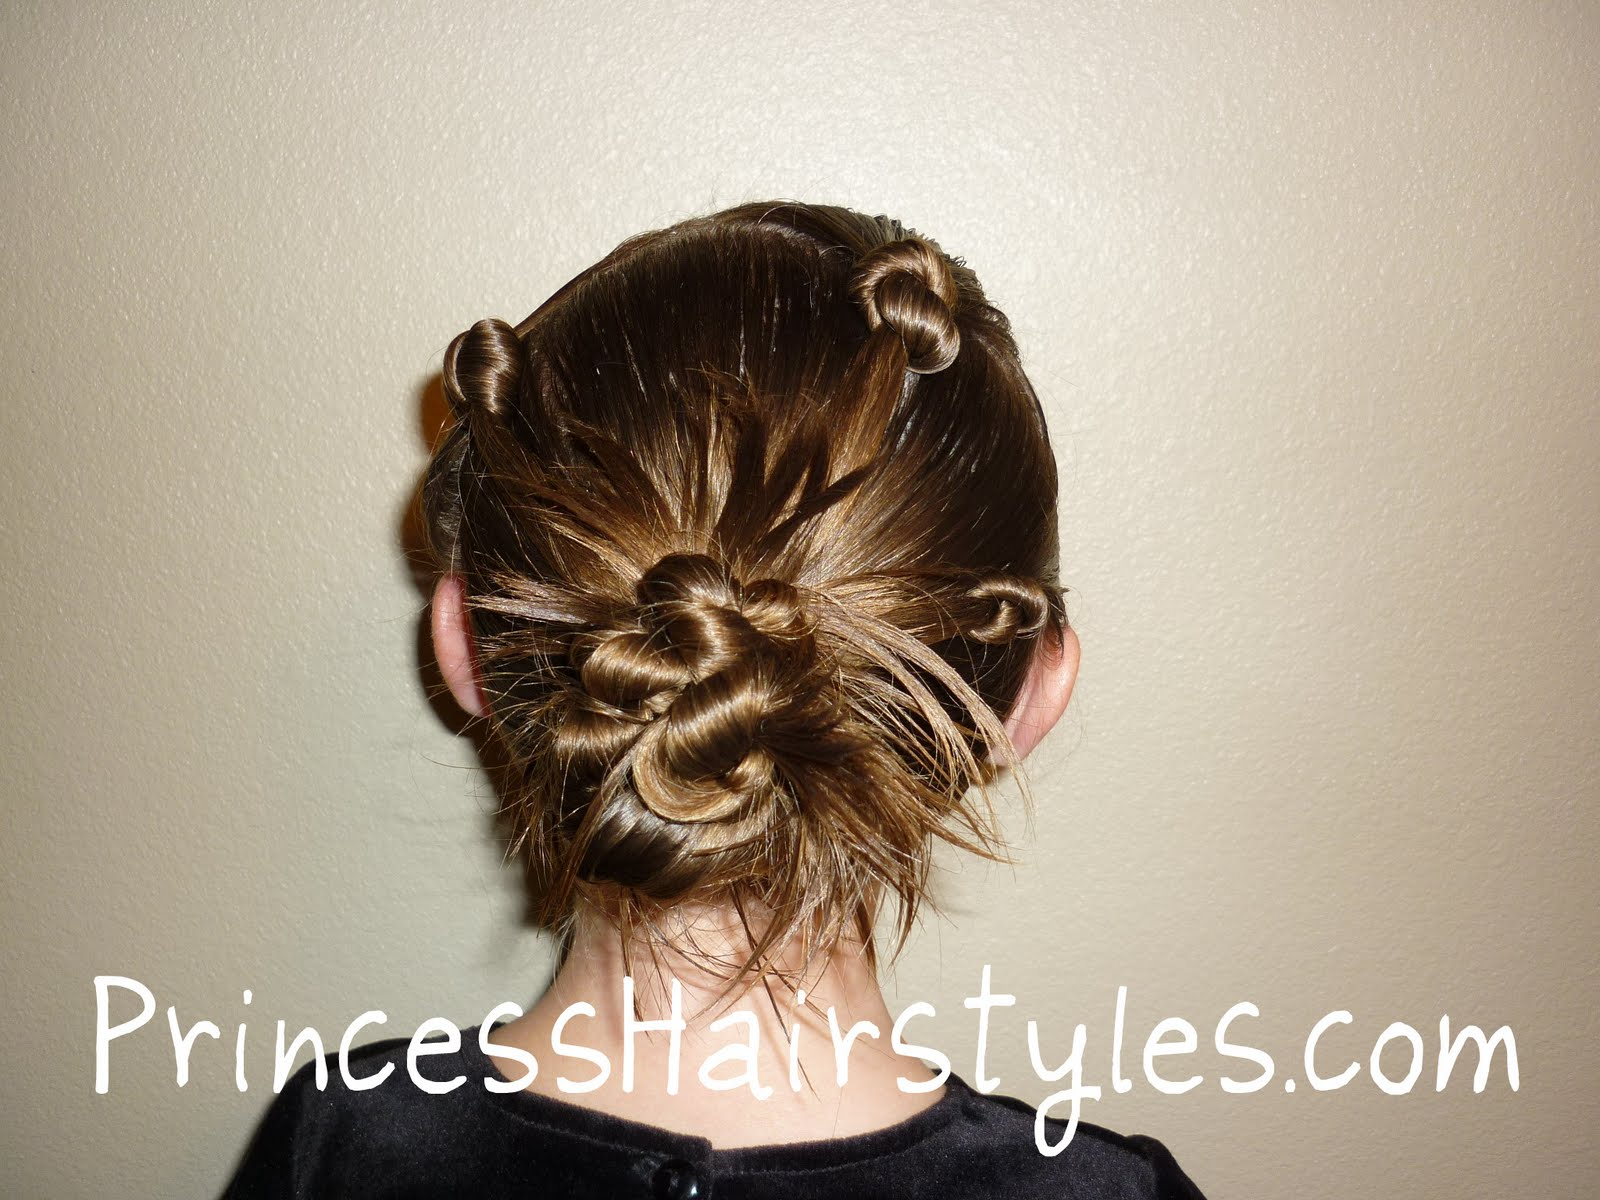 Hair Styles For A Dance: Hairstyles For Girls - Princess